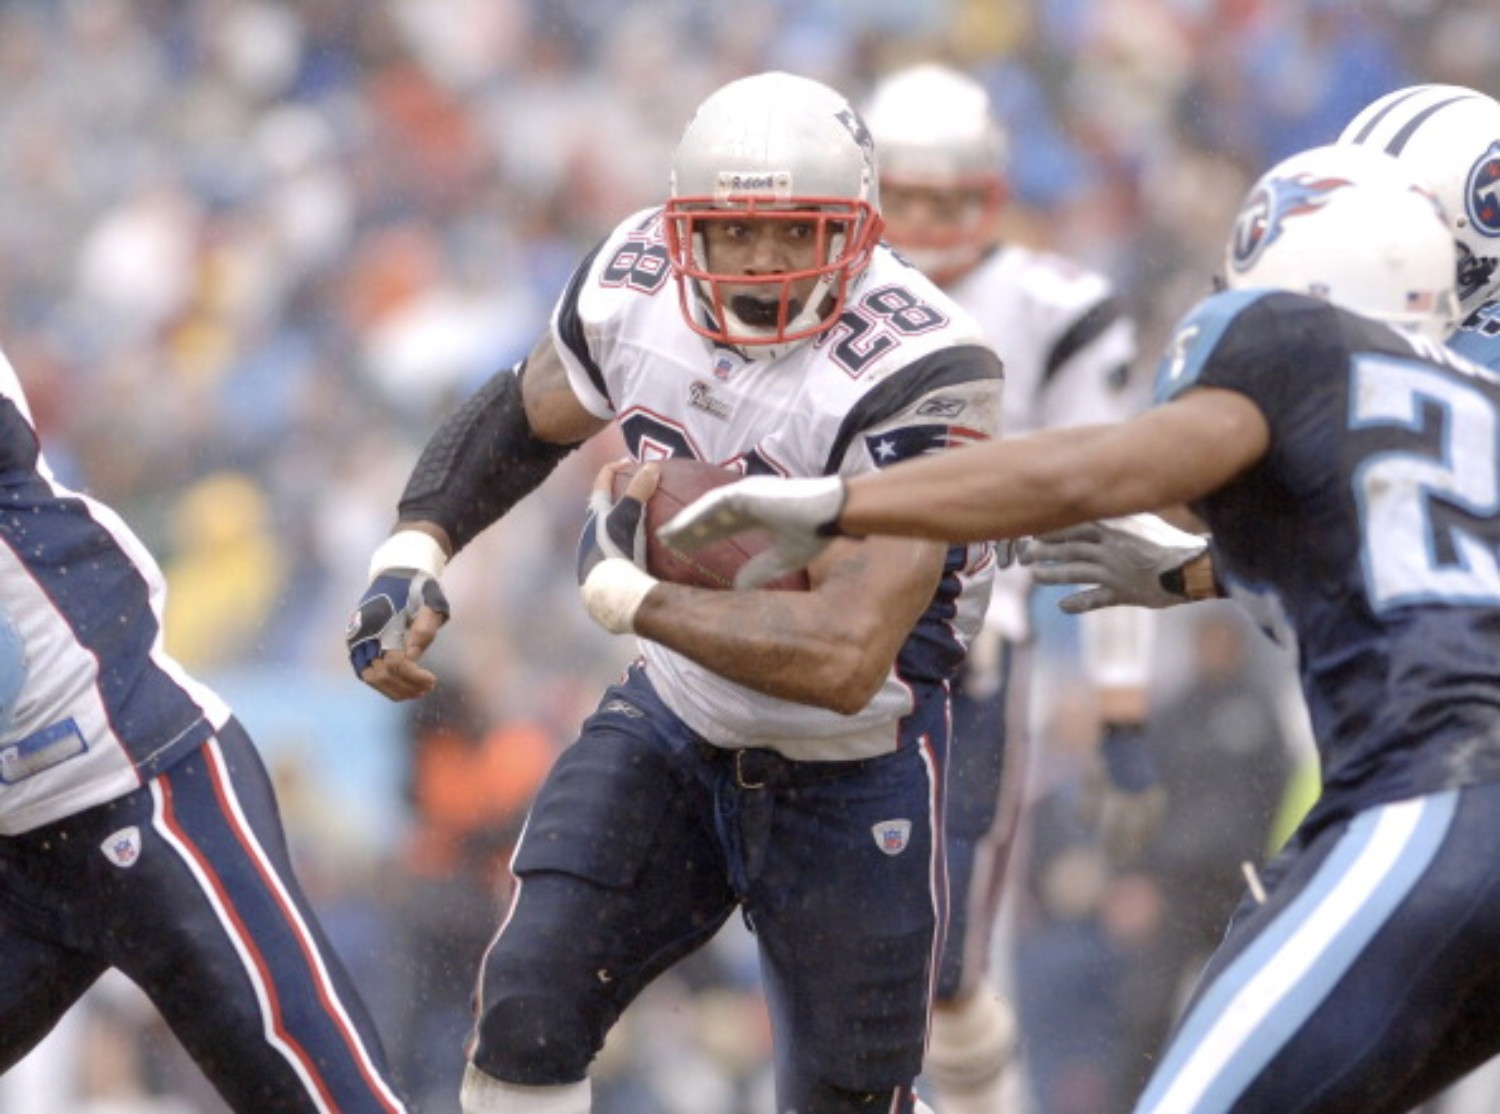 Corey Dillon had a successful career with the New England Patriots